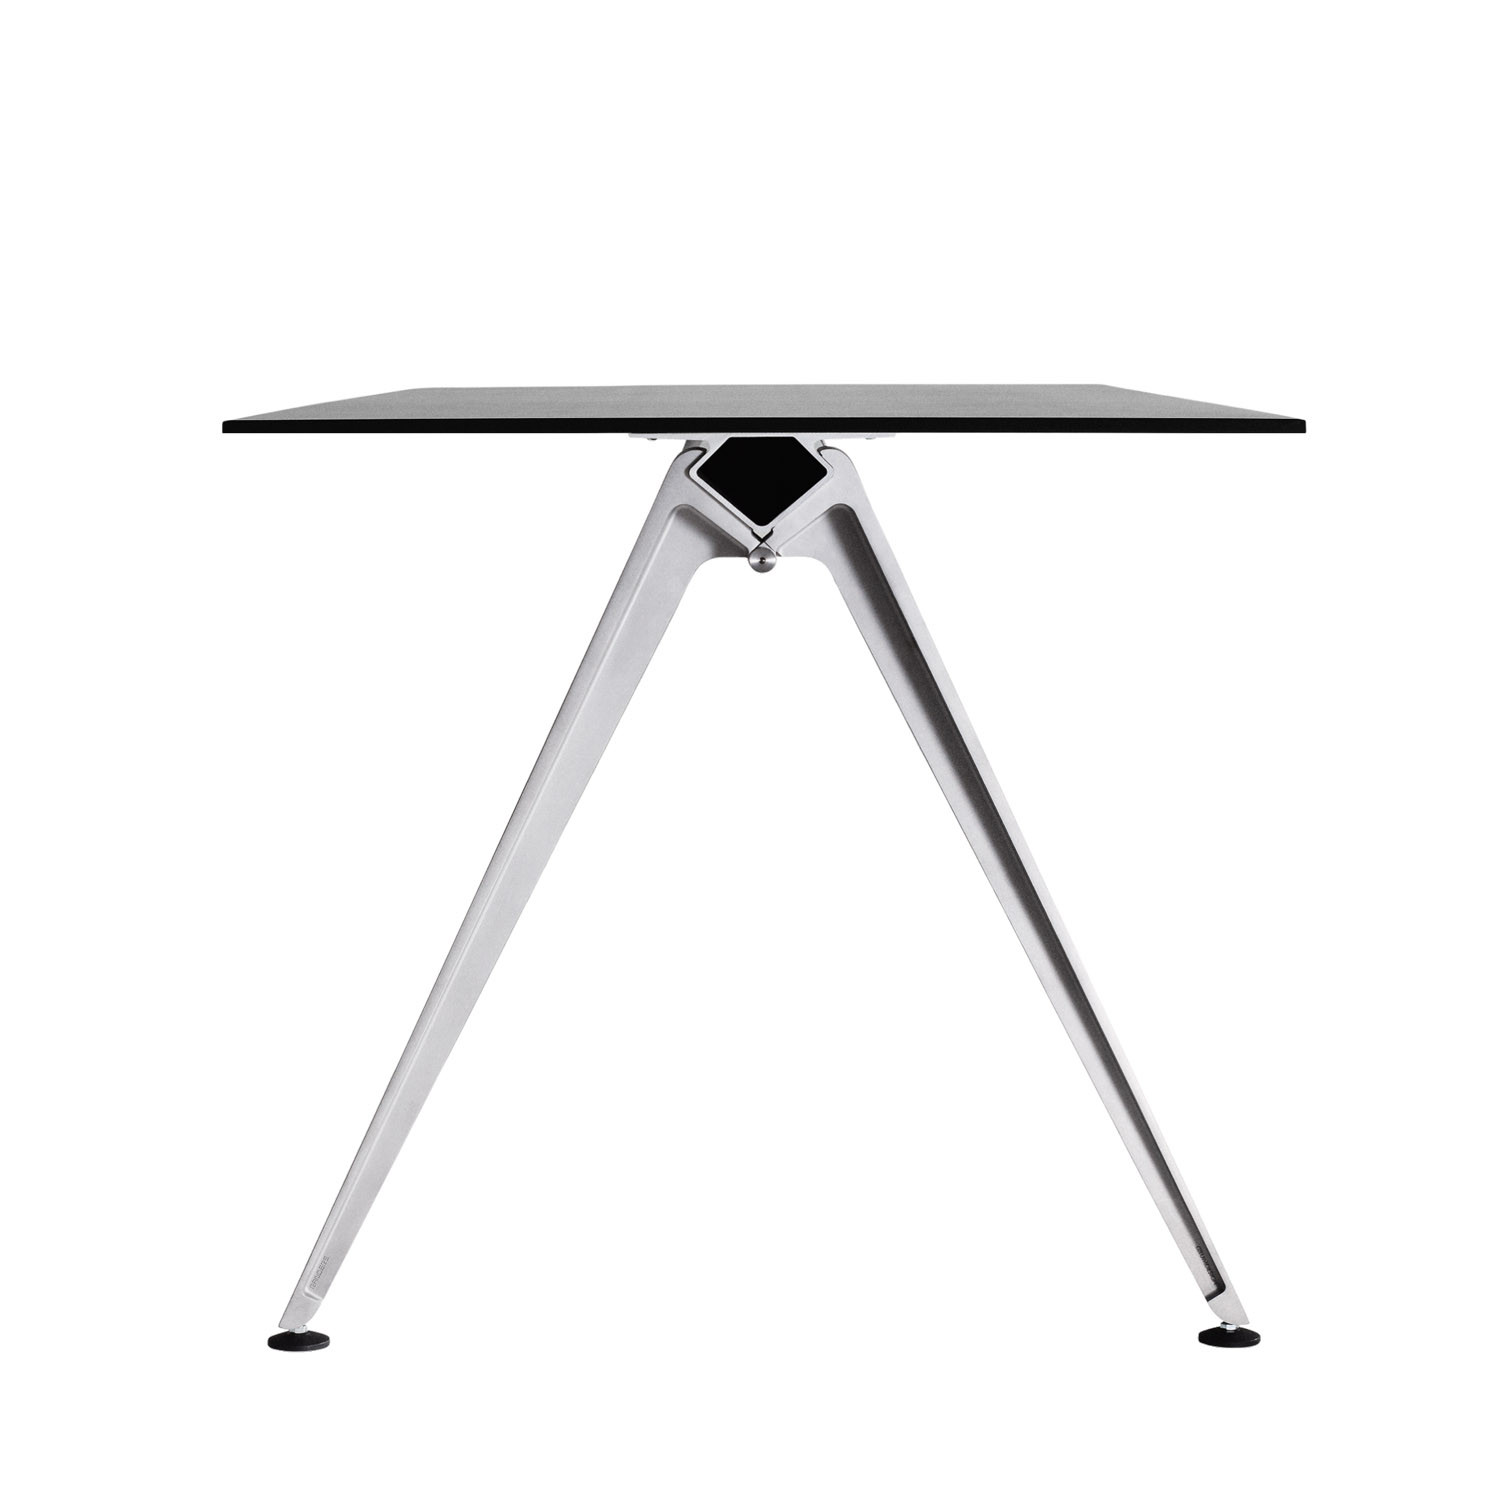 Grip Basic Table by Randers+Radius